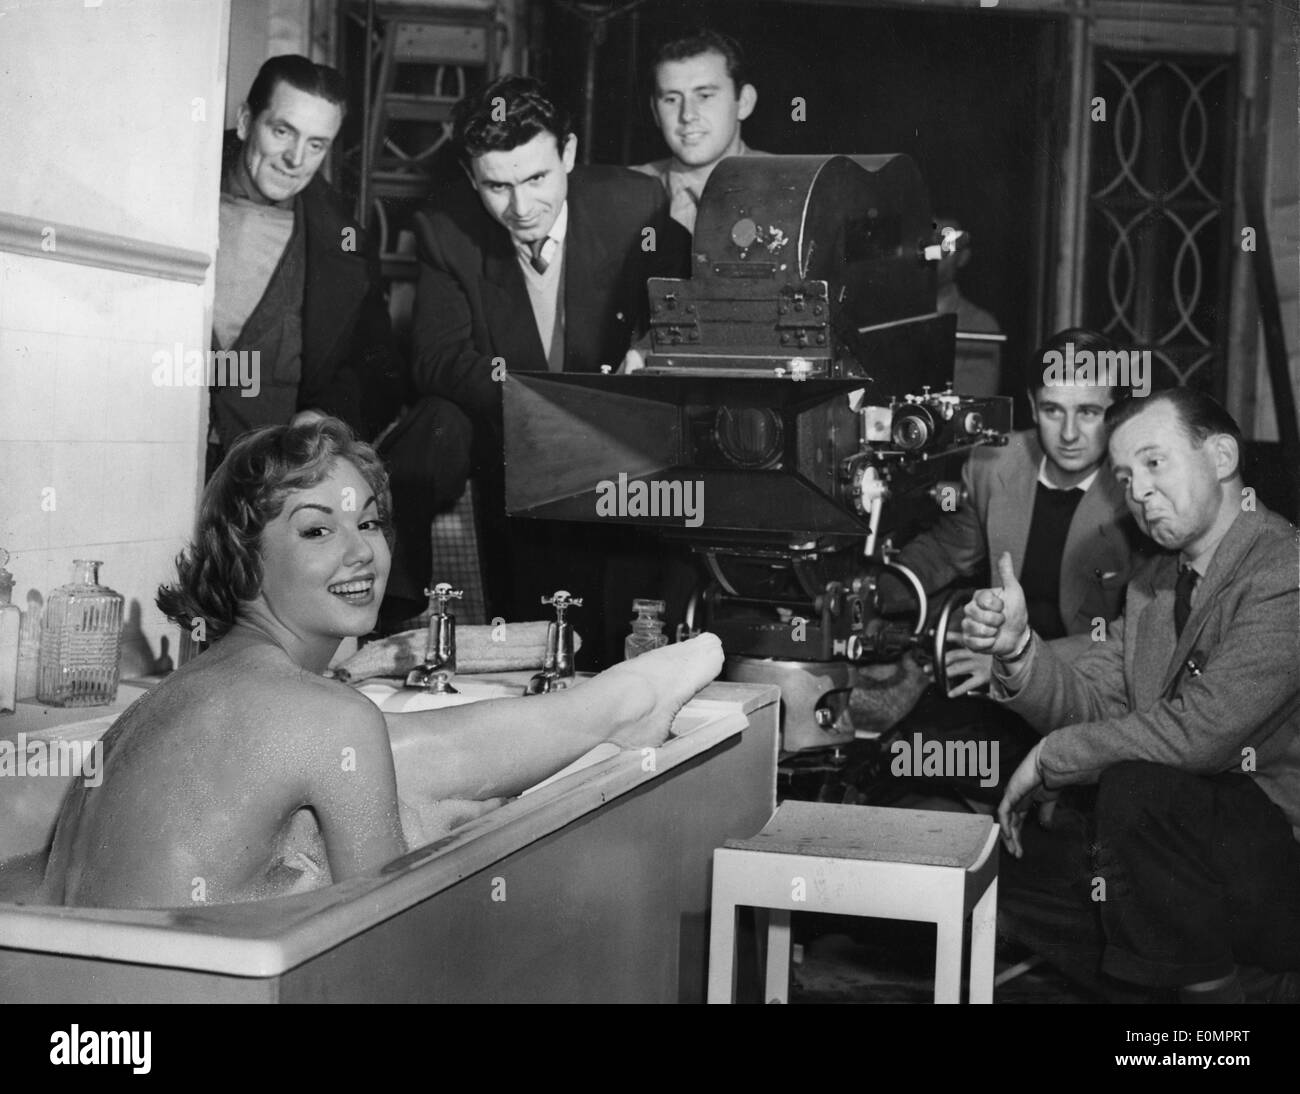 Feb. 8, 1956 - Actress MYLENE DEMONGEOT takes a bubble bath surrounded by cameramen and crew on set of the film, 'It's a Great Life,' at Shepperton Studios. - Stock Image